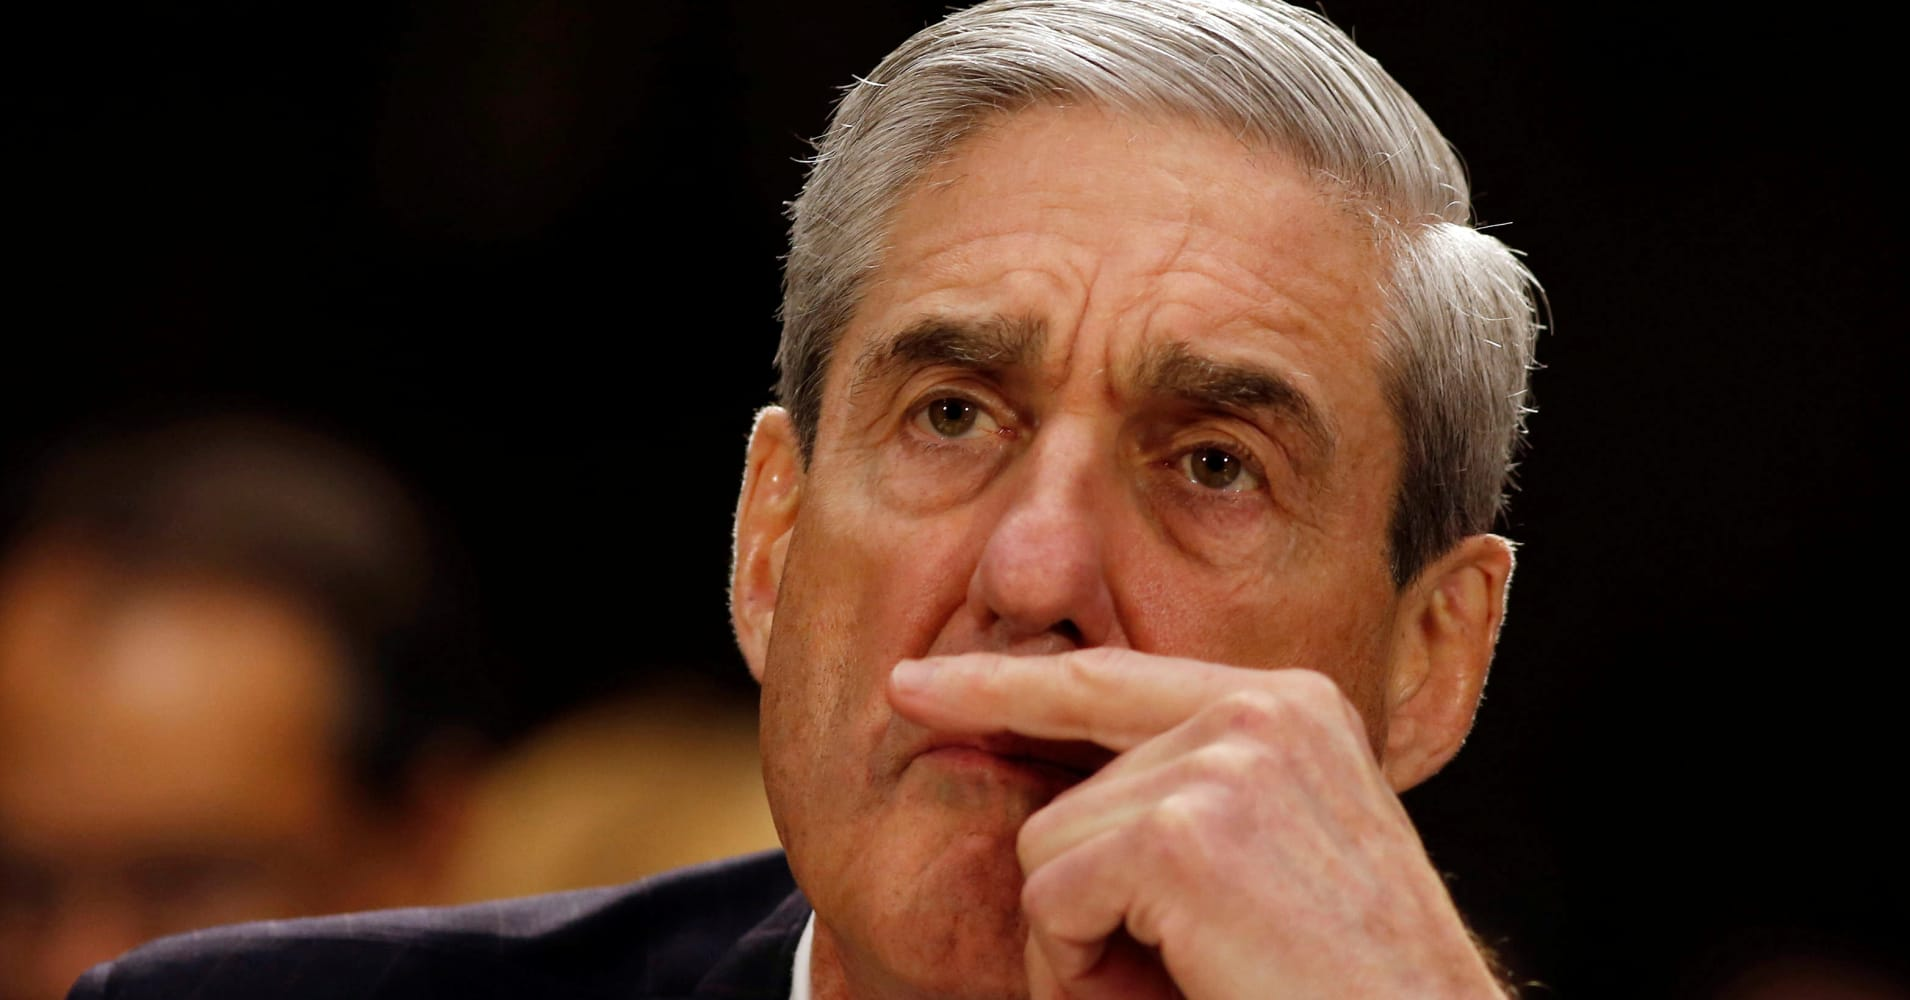 Mueller evidence 14 potential crimes. Only two publicly known.